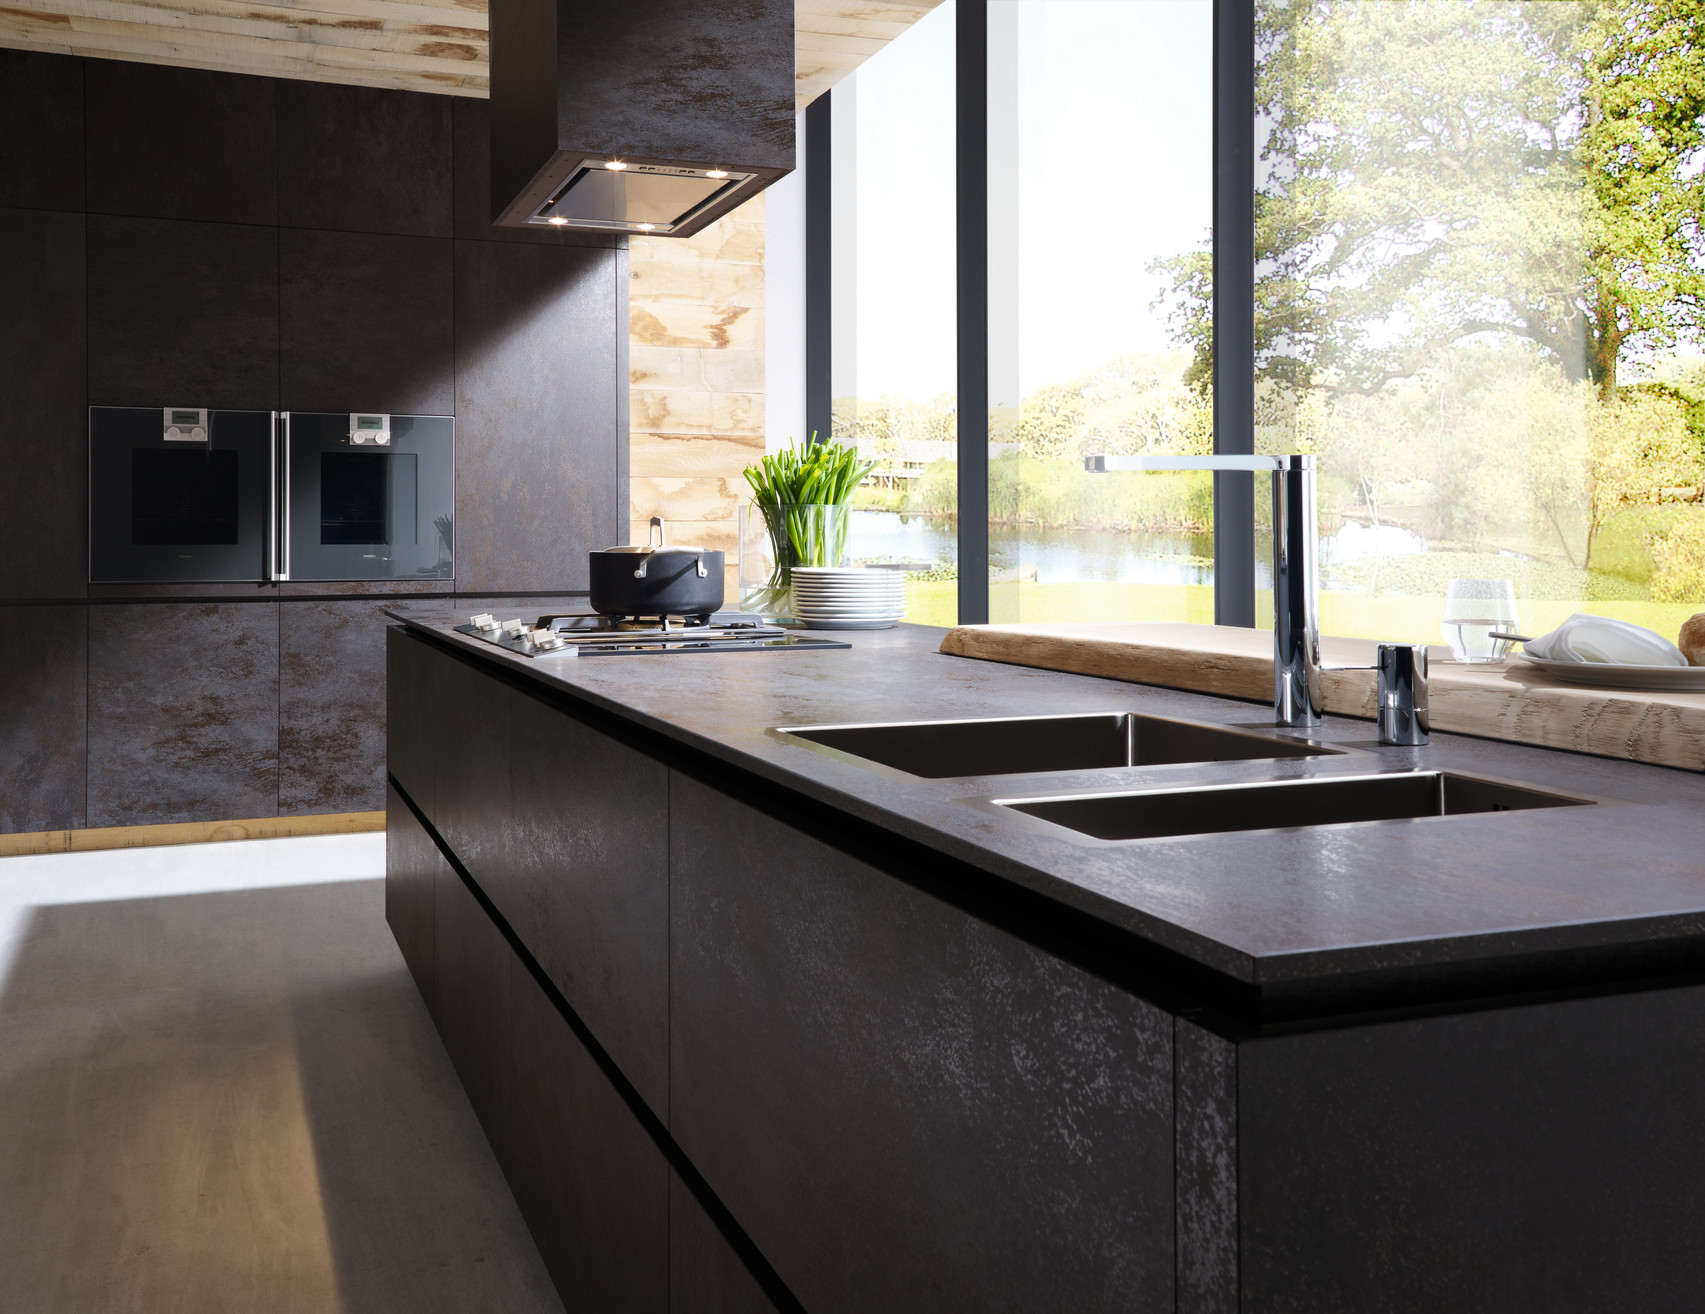 Luxury Alno Cera- ceramic kitchen #theultimate alno ceramic kitchen